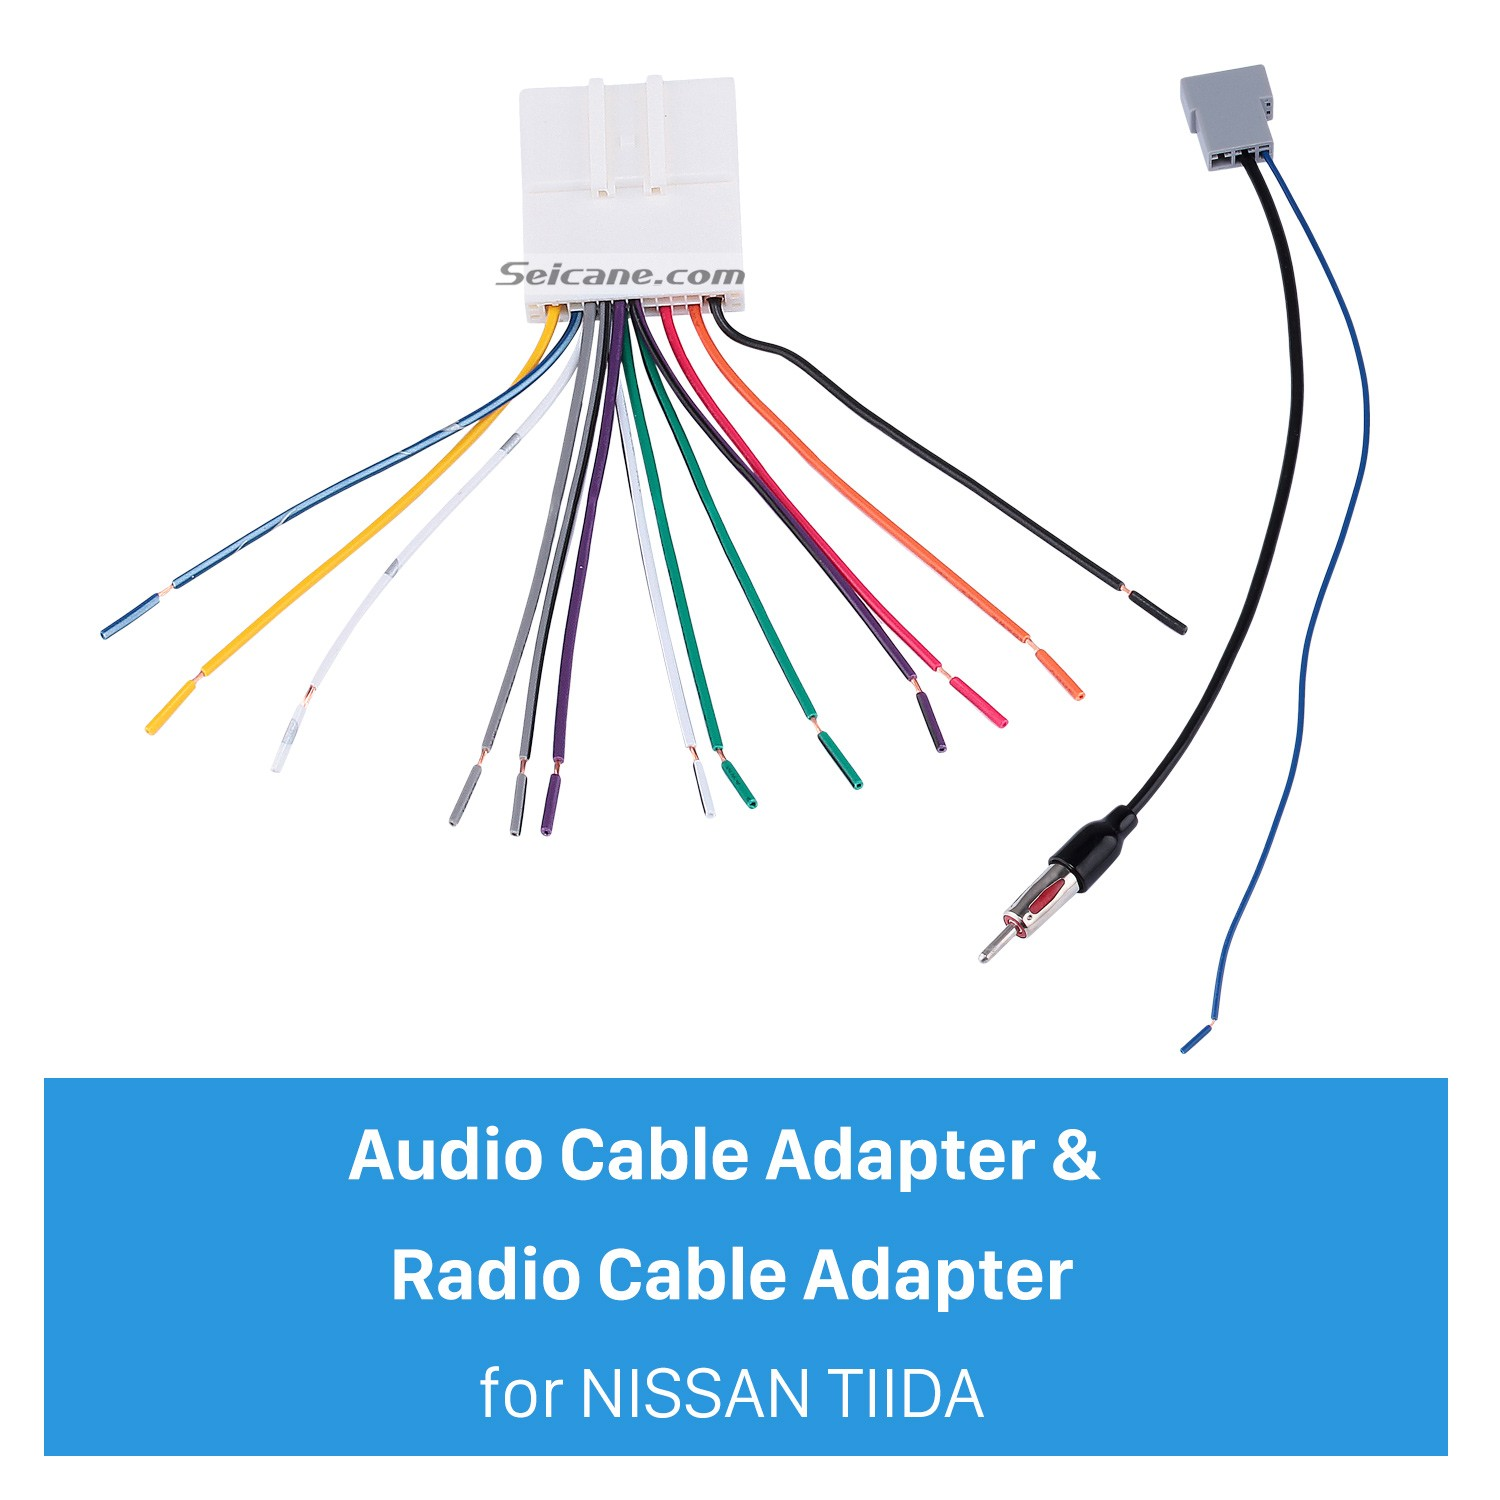 hight resolution of sound wiring harness audio cable adapter and radio cable adapter for sound wiring harness audio cable